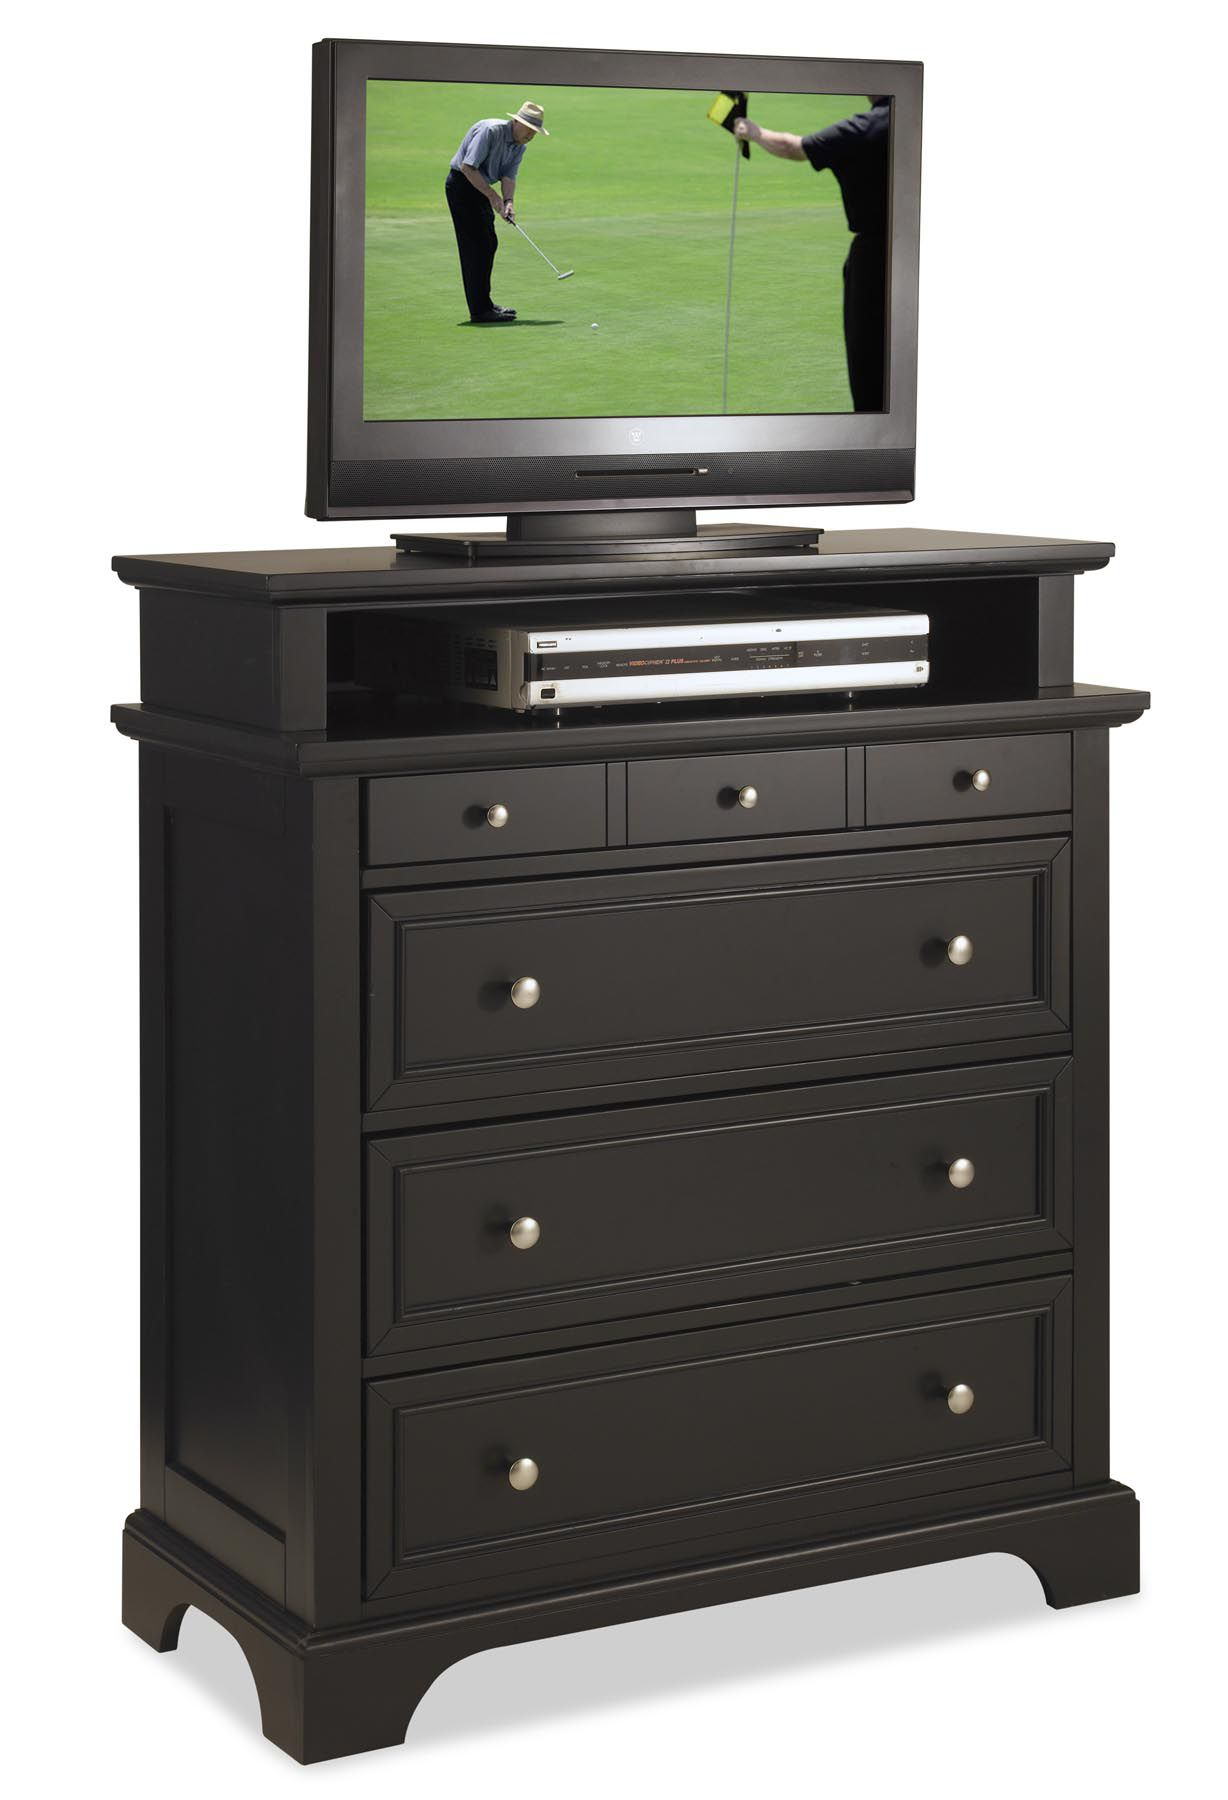 Bedford TV Media Chest Black Finish